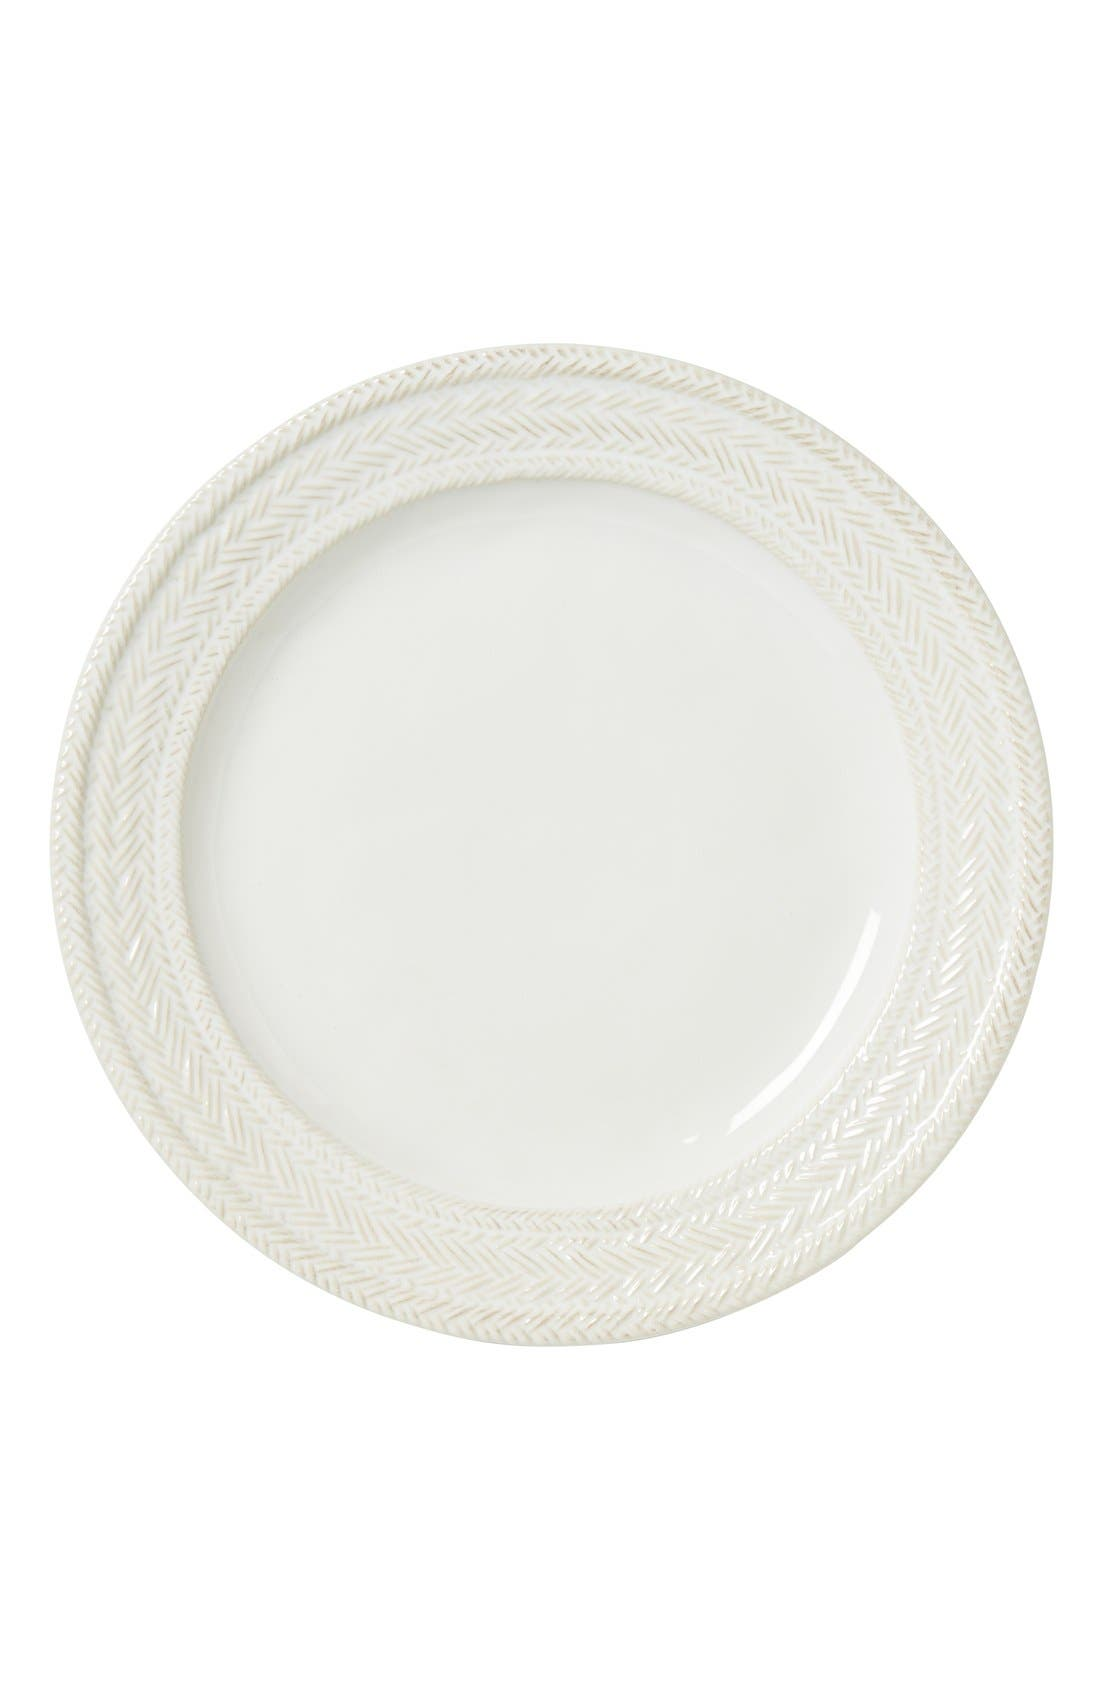 Alternate Image 1 Selected - Juliska Le Panier Dinner Plate